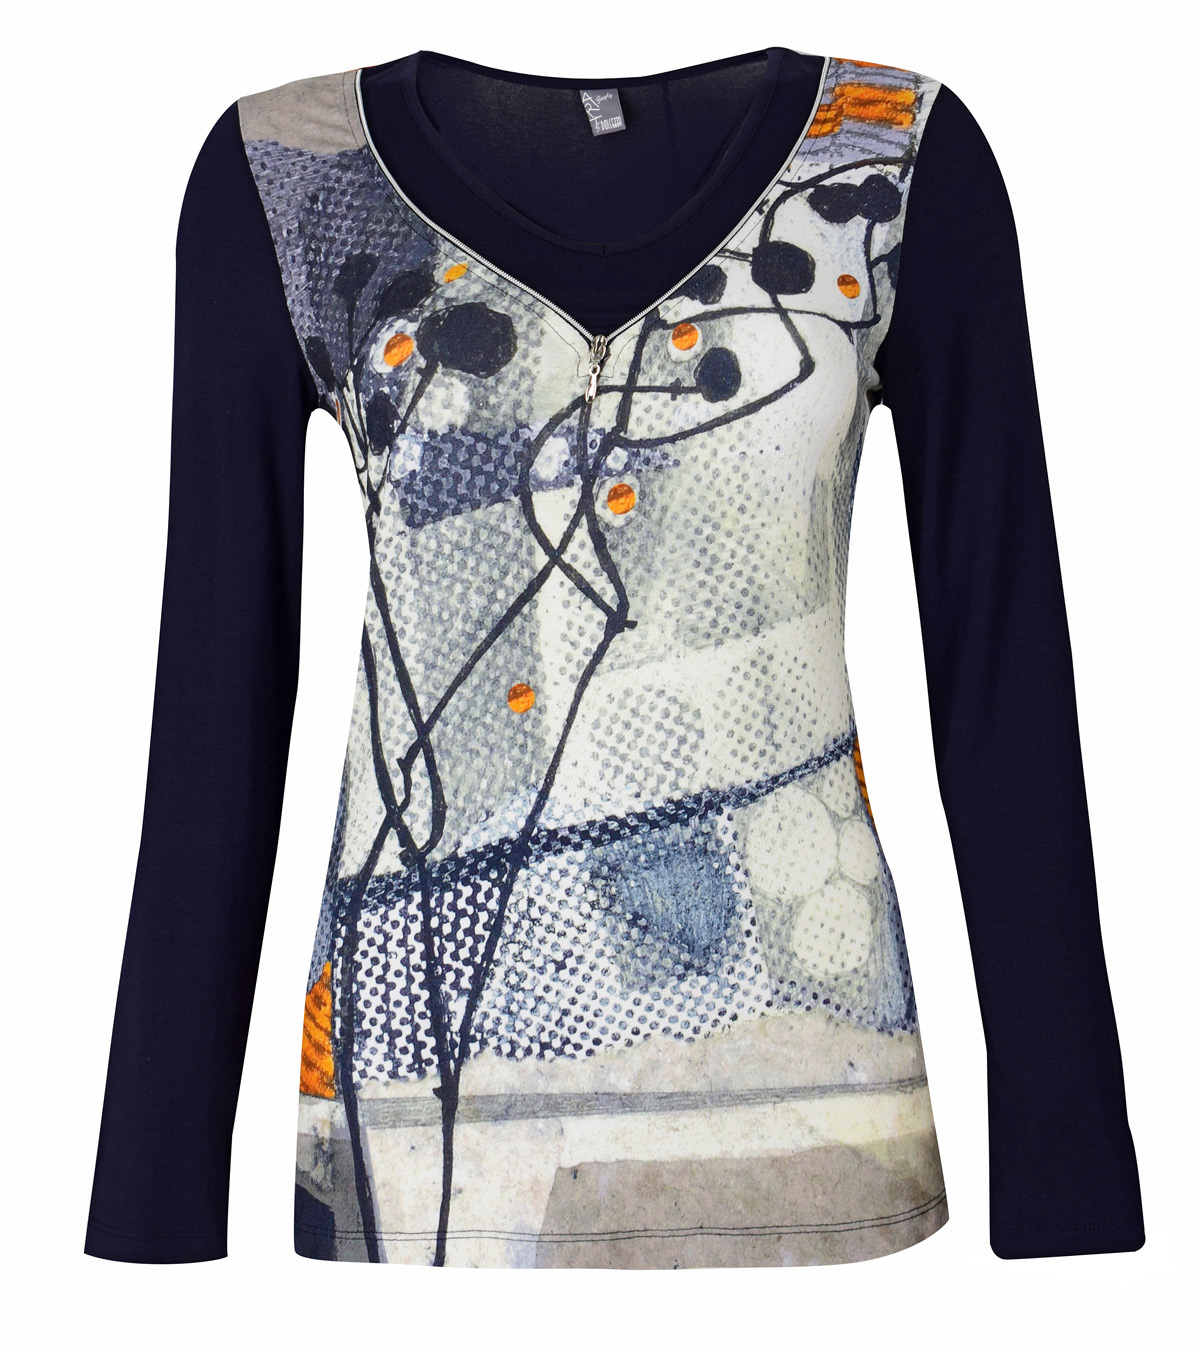 Simply Art Dolcezza: Incredibly Dandy Dragonfly Zip Abstract Art Tunic (1 Left!) Dolcezza_SimplyArt_59693_N